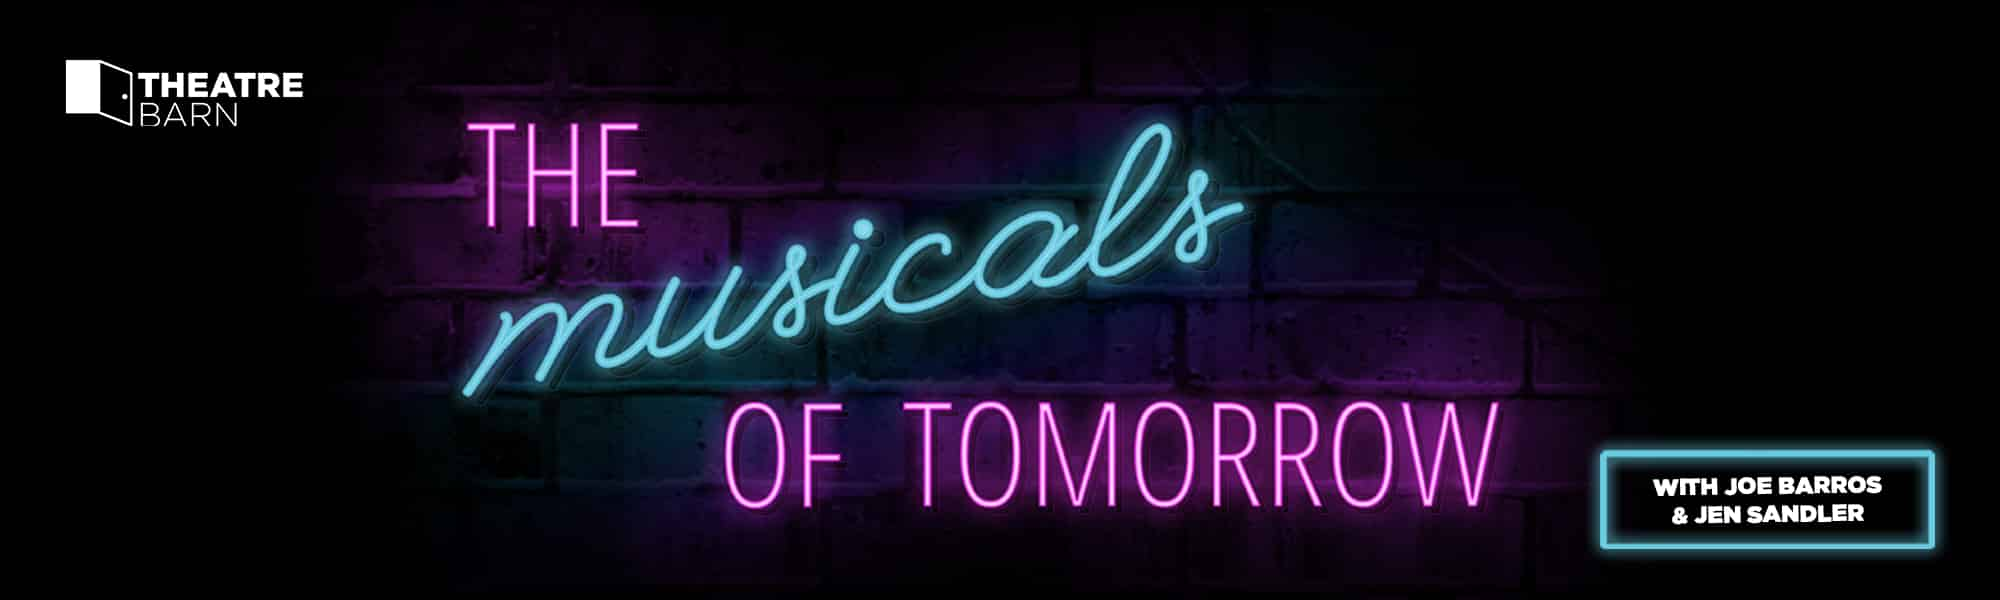 The Musicals of Tomorrow - banner